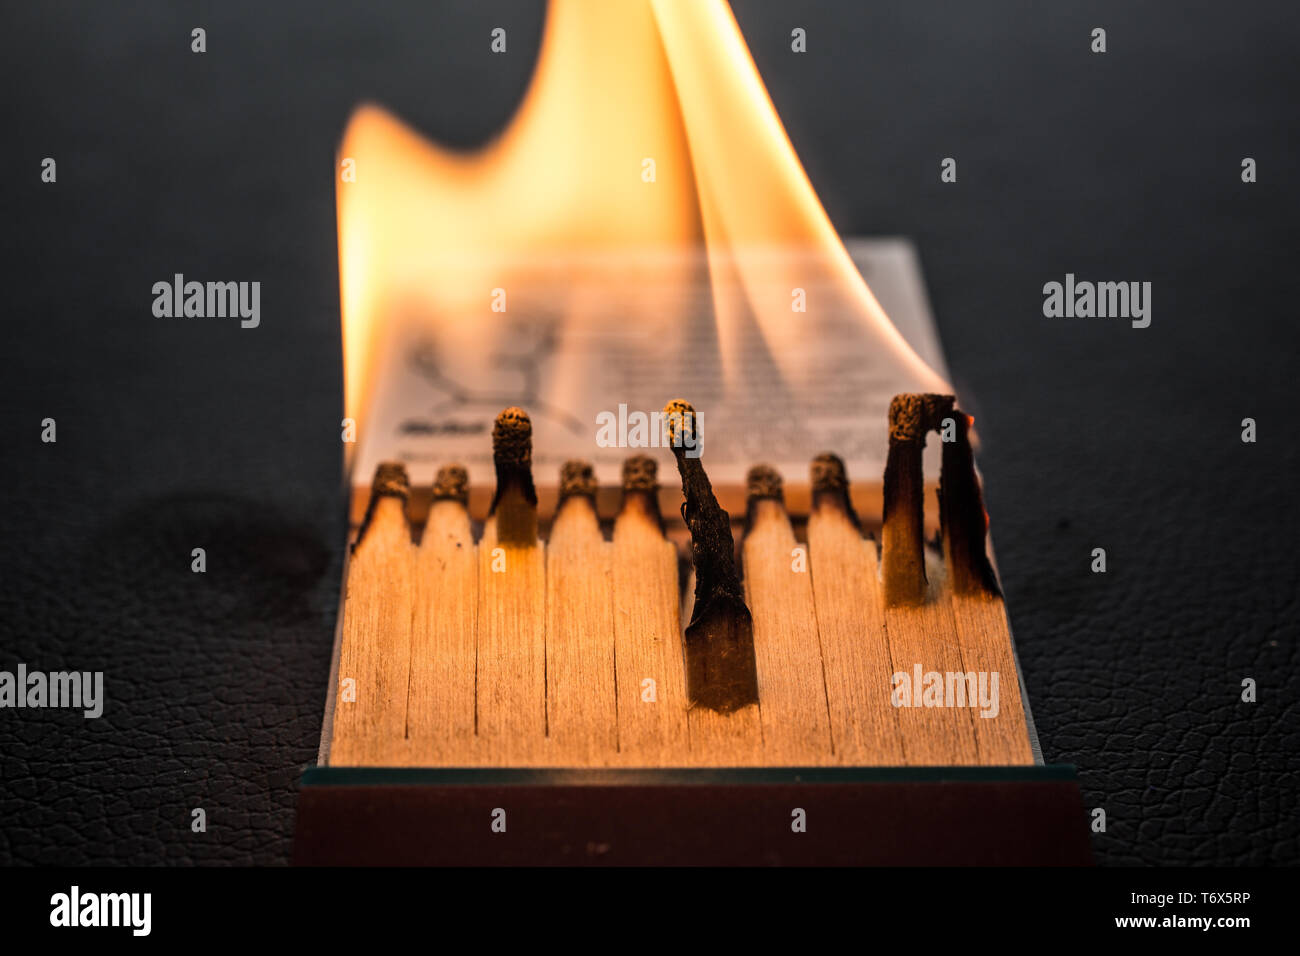 Matchbook with burning wood - Stock Image